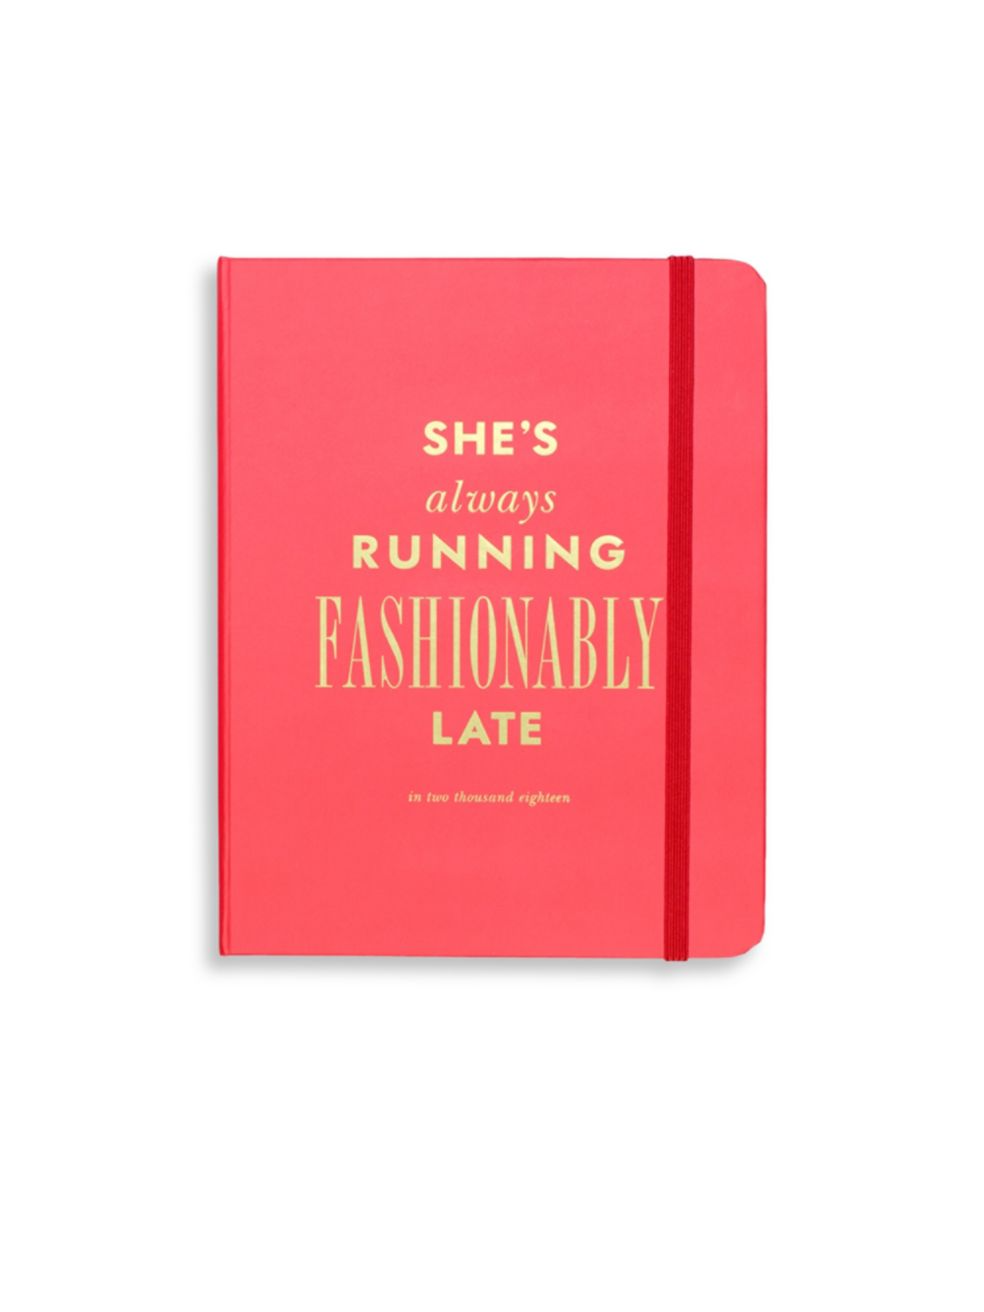 Kate Spade's Agenda.  Cute, functional, and           sophisticated. This agenda says professional and funky all the while highly organized.